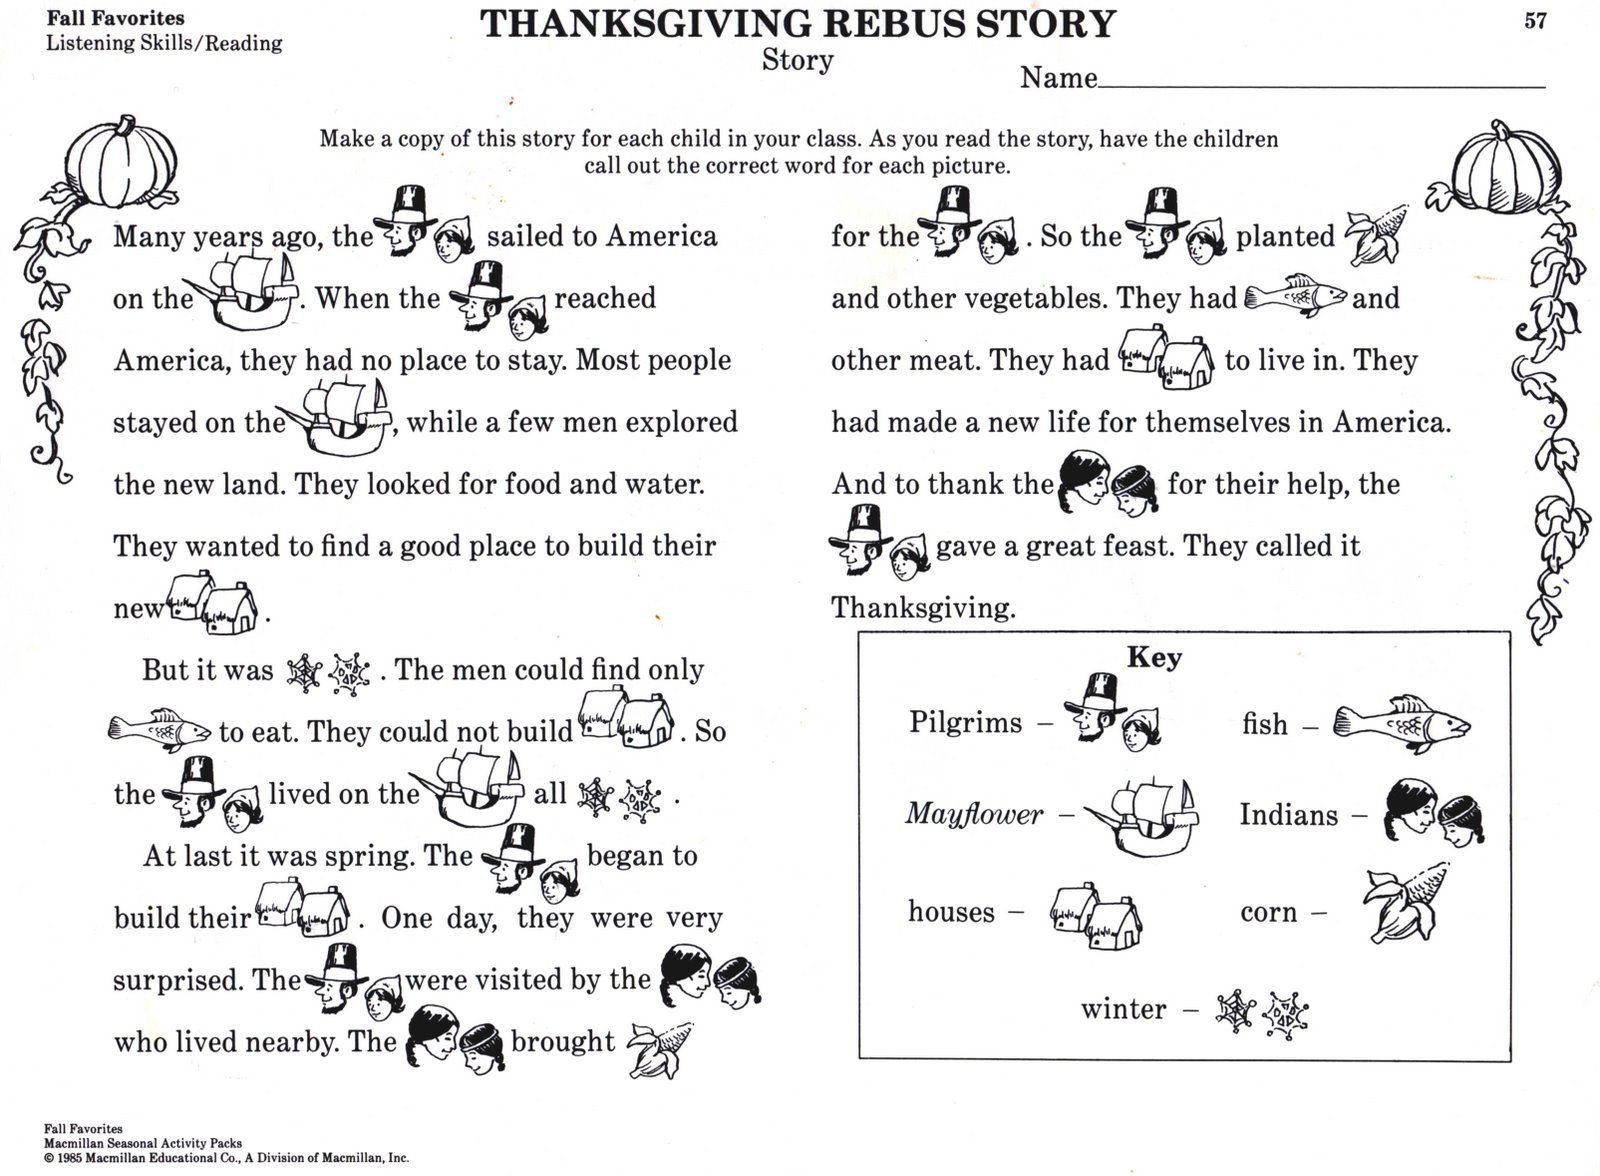 Rebus Story Worksheets Thanksgiving Activities for Kids